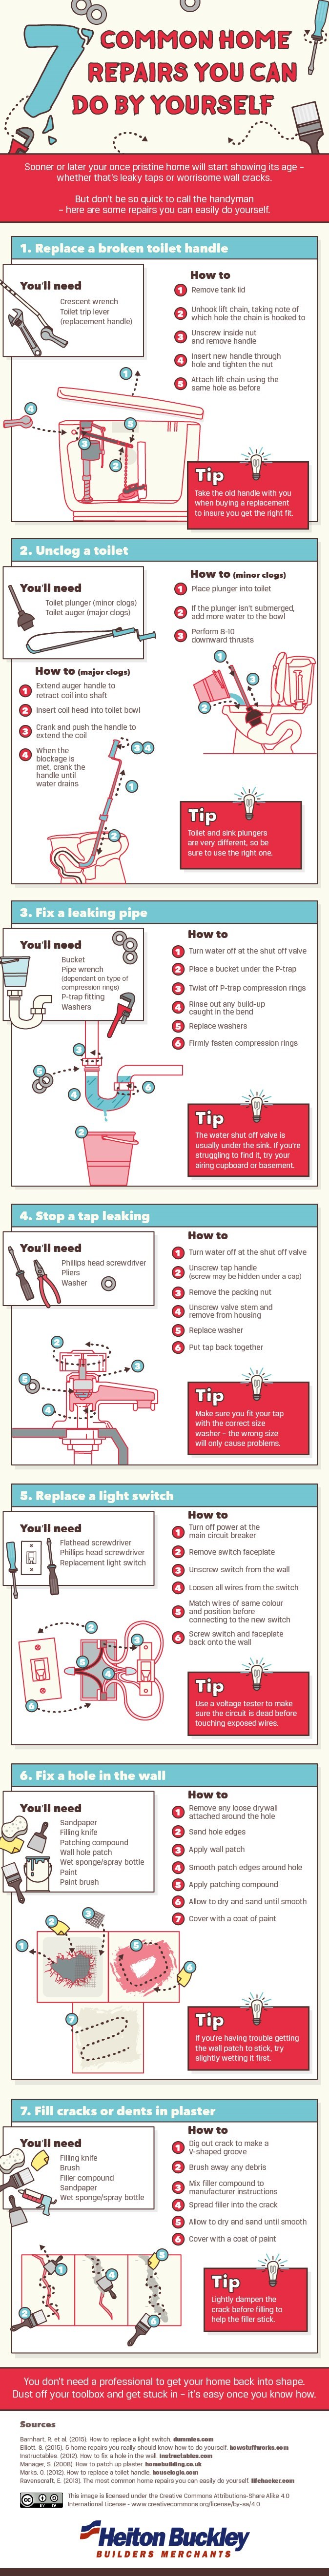 7 Common Home Repairs You Can Do By Yourself